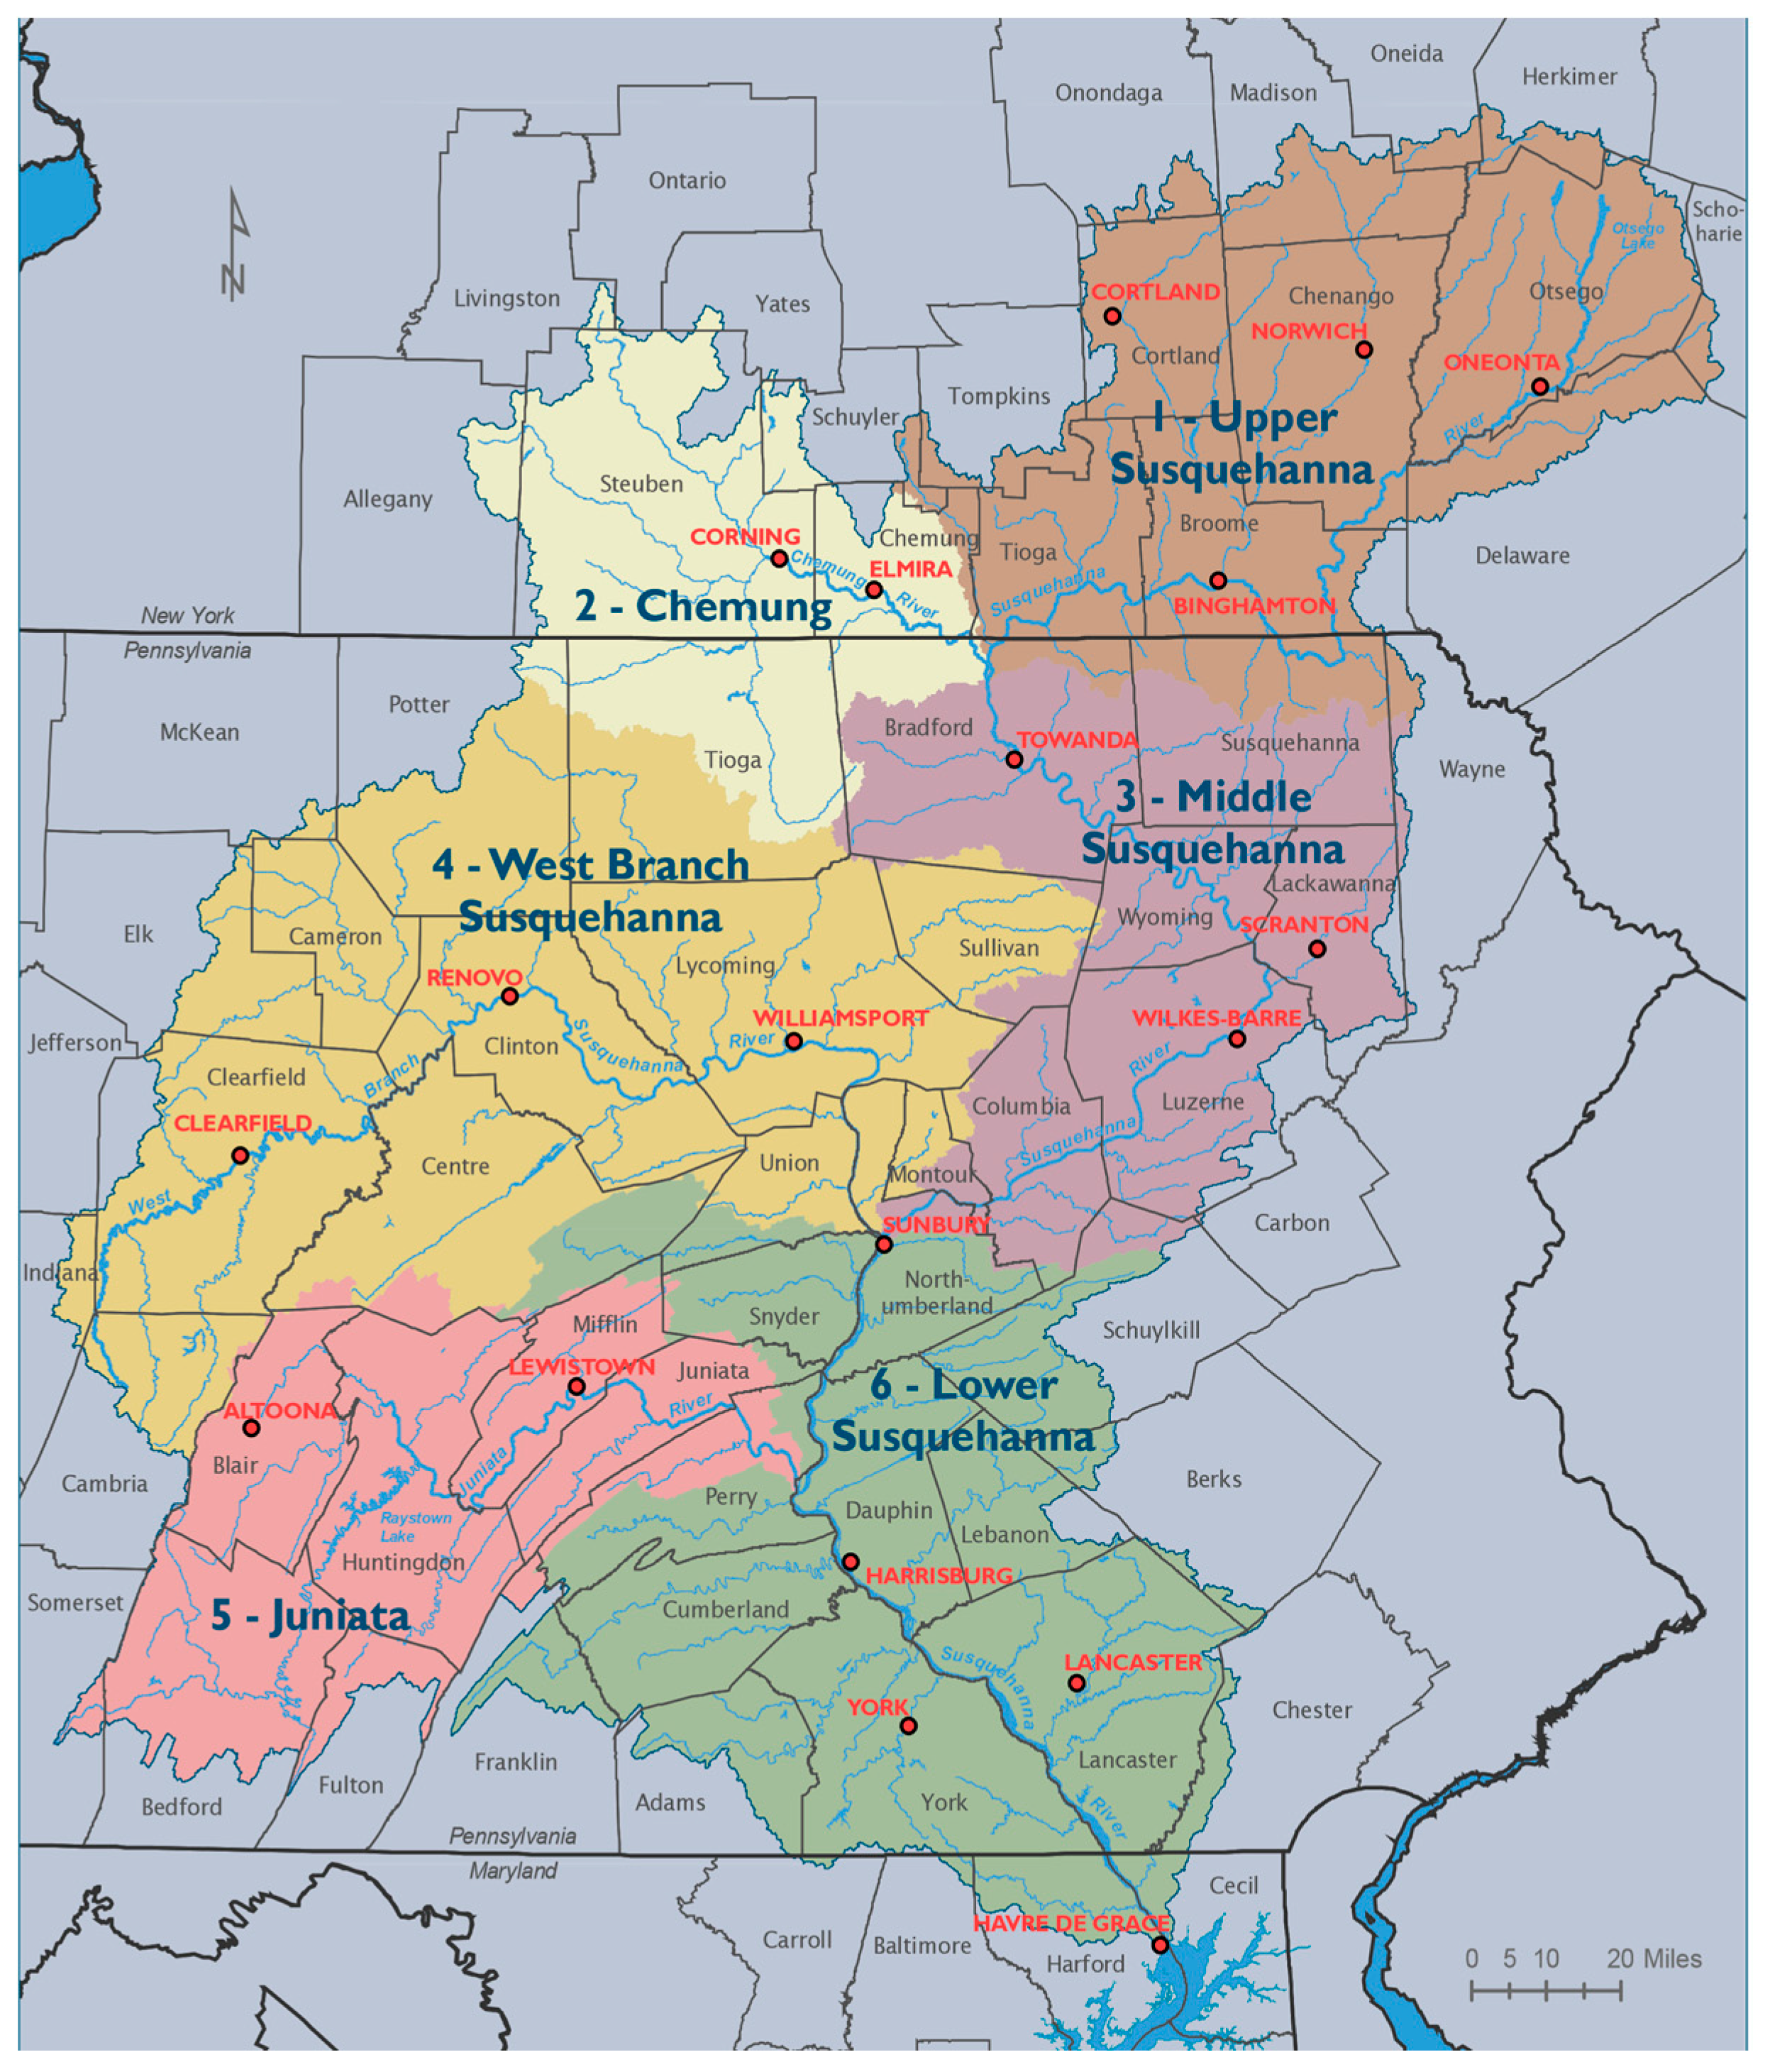 Sustainability | Free Full-Text | Marcellus Shale Fracking